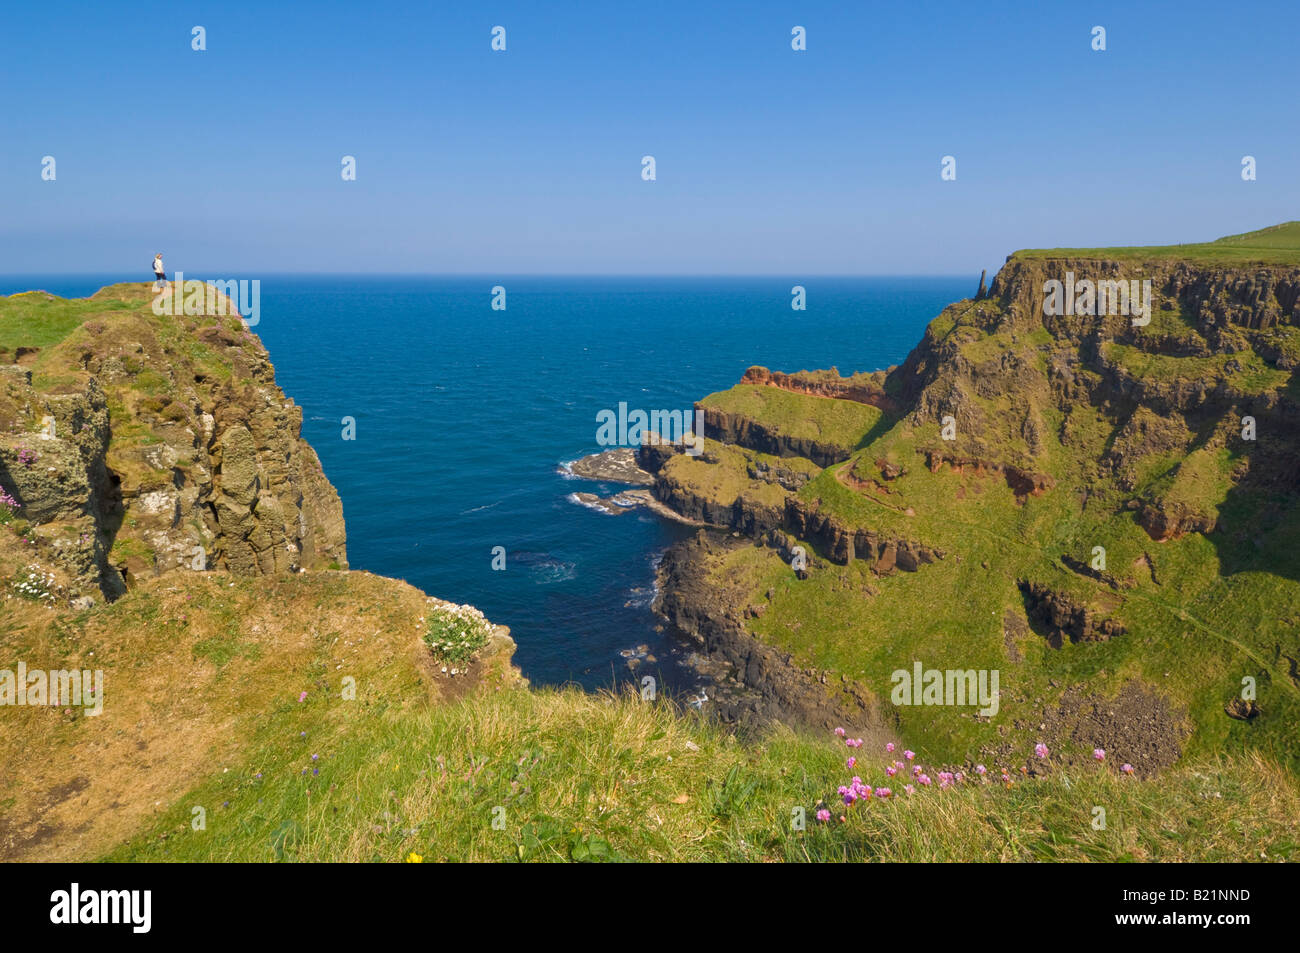 Giants Chimney tops Giants Causeway north Antrim coastal path County Antrim Northern Ireland GB UK EU Europe - Stock Image